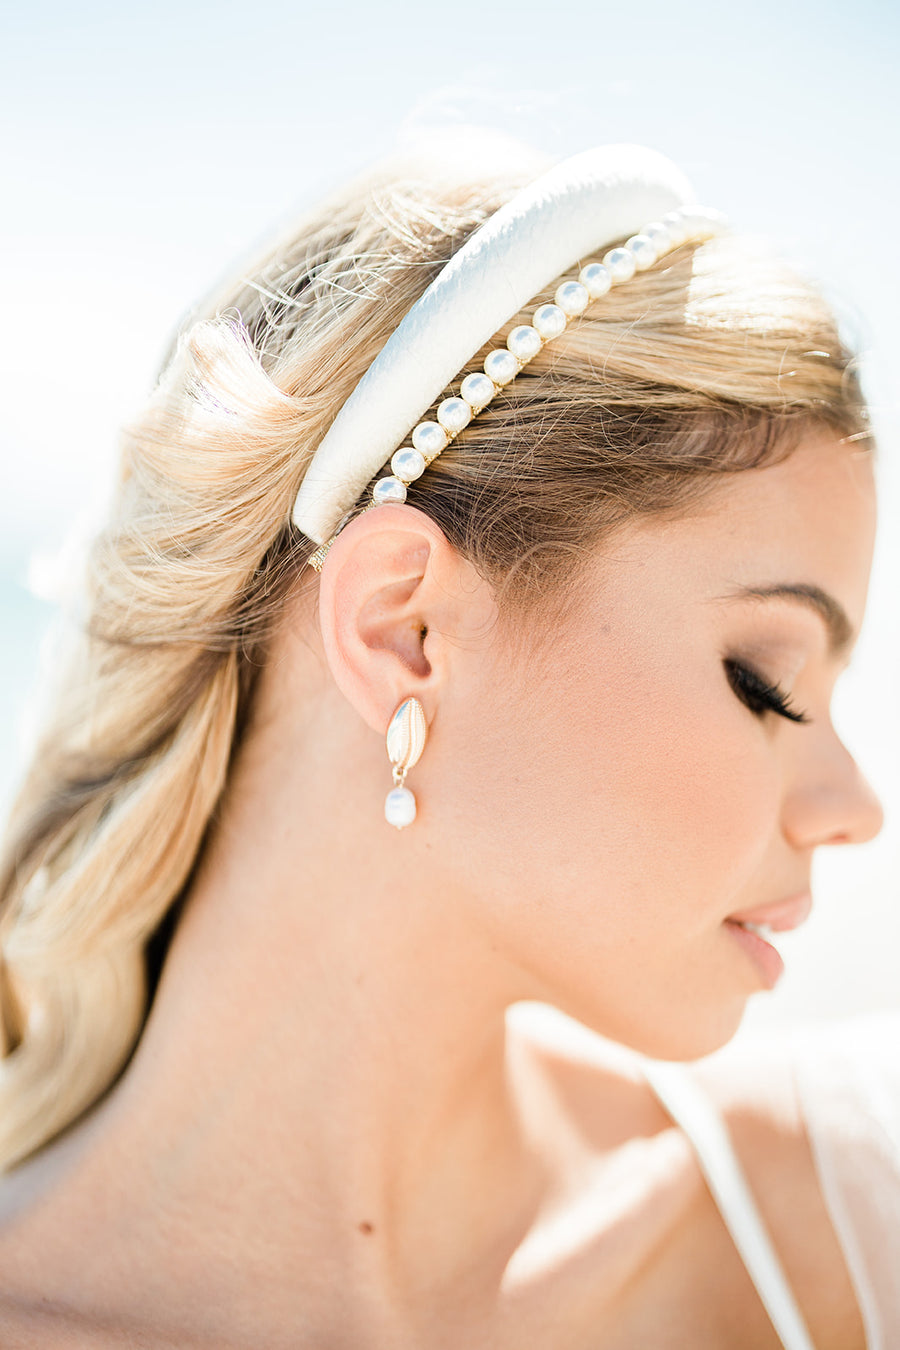 Brinn Headband - The Beach Bride by Chic Parisien, a destination for beach weddings, bachelorettes and honeymoons